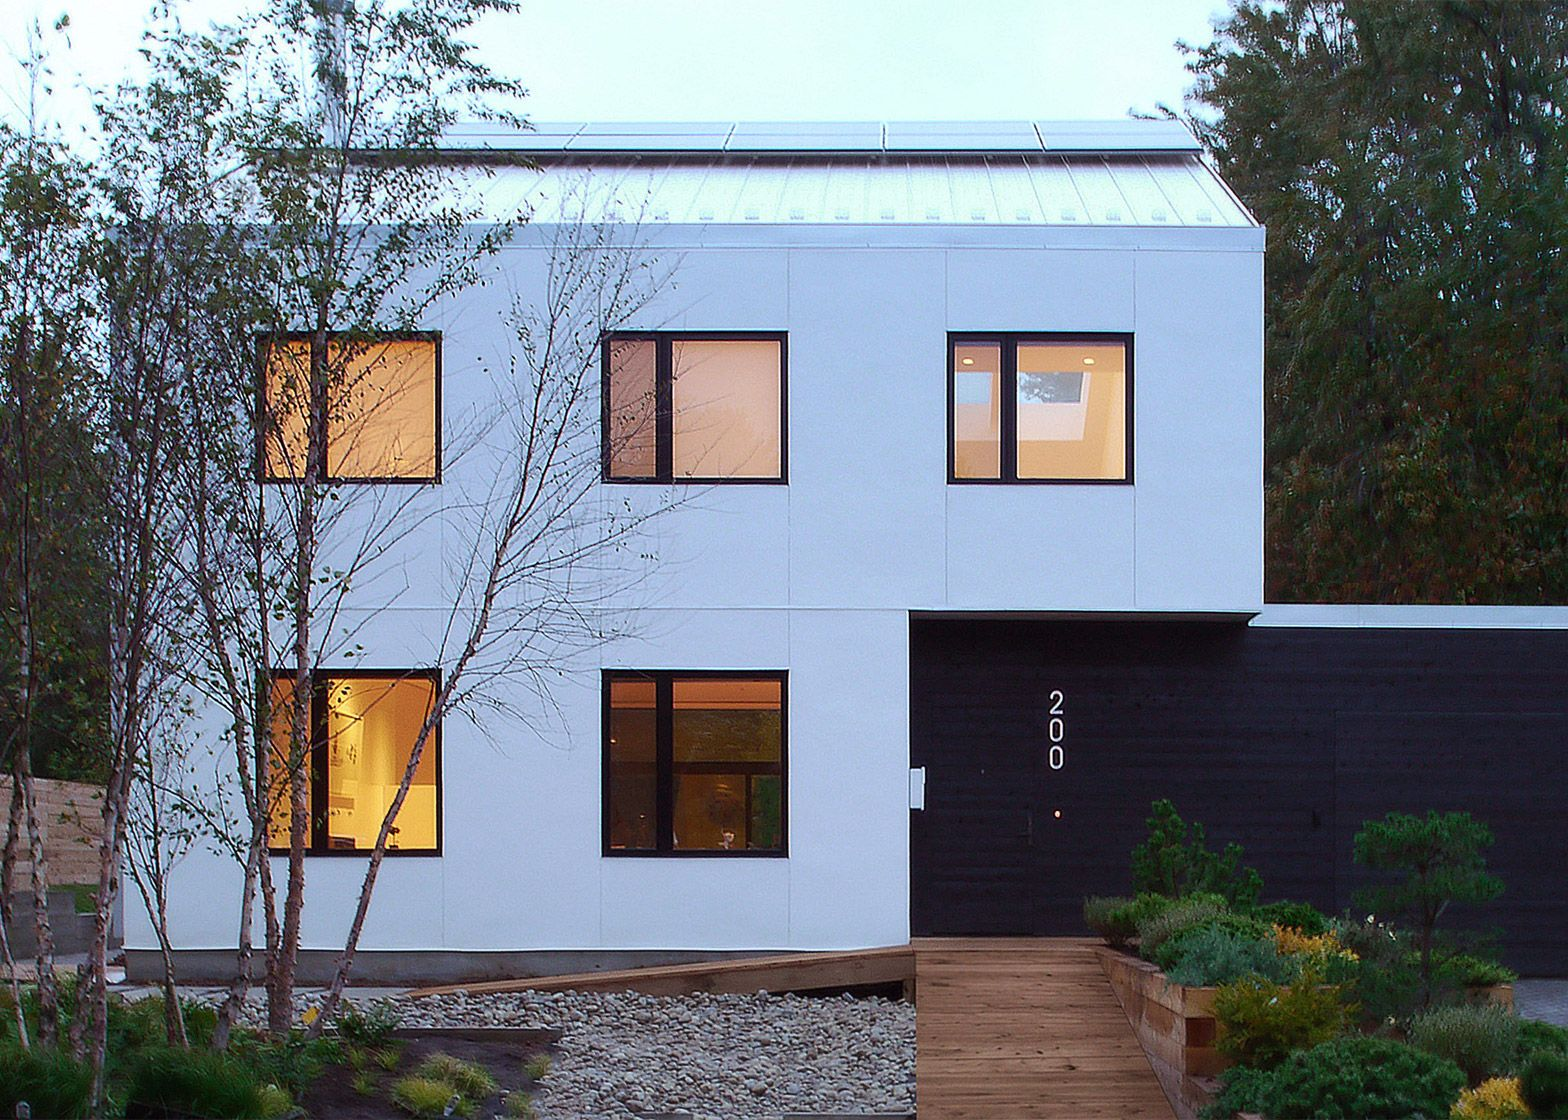 Straw bales insulate monochrome house in Ontario by ...